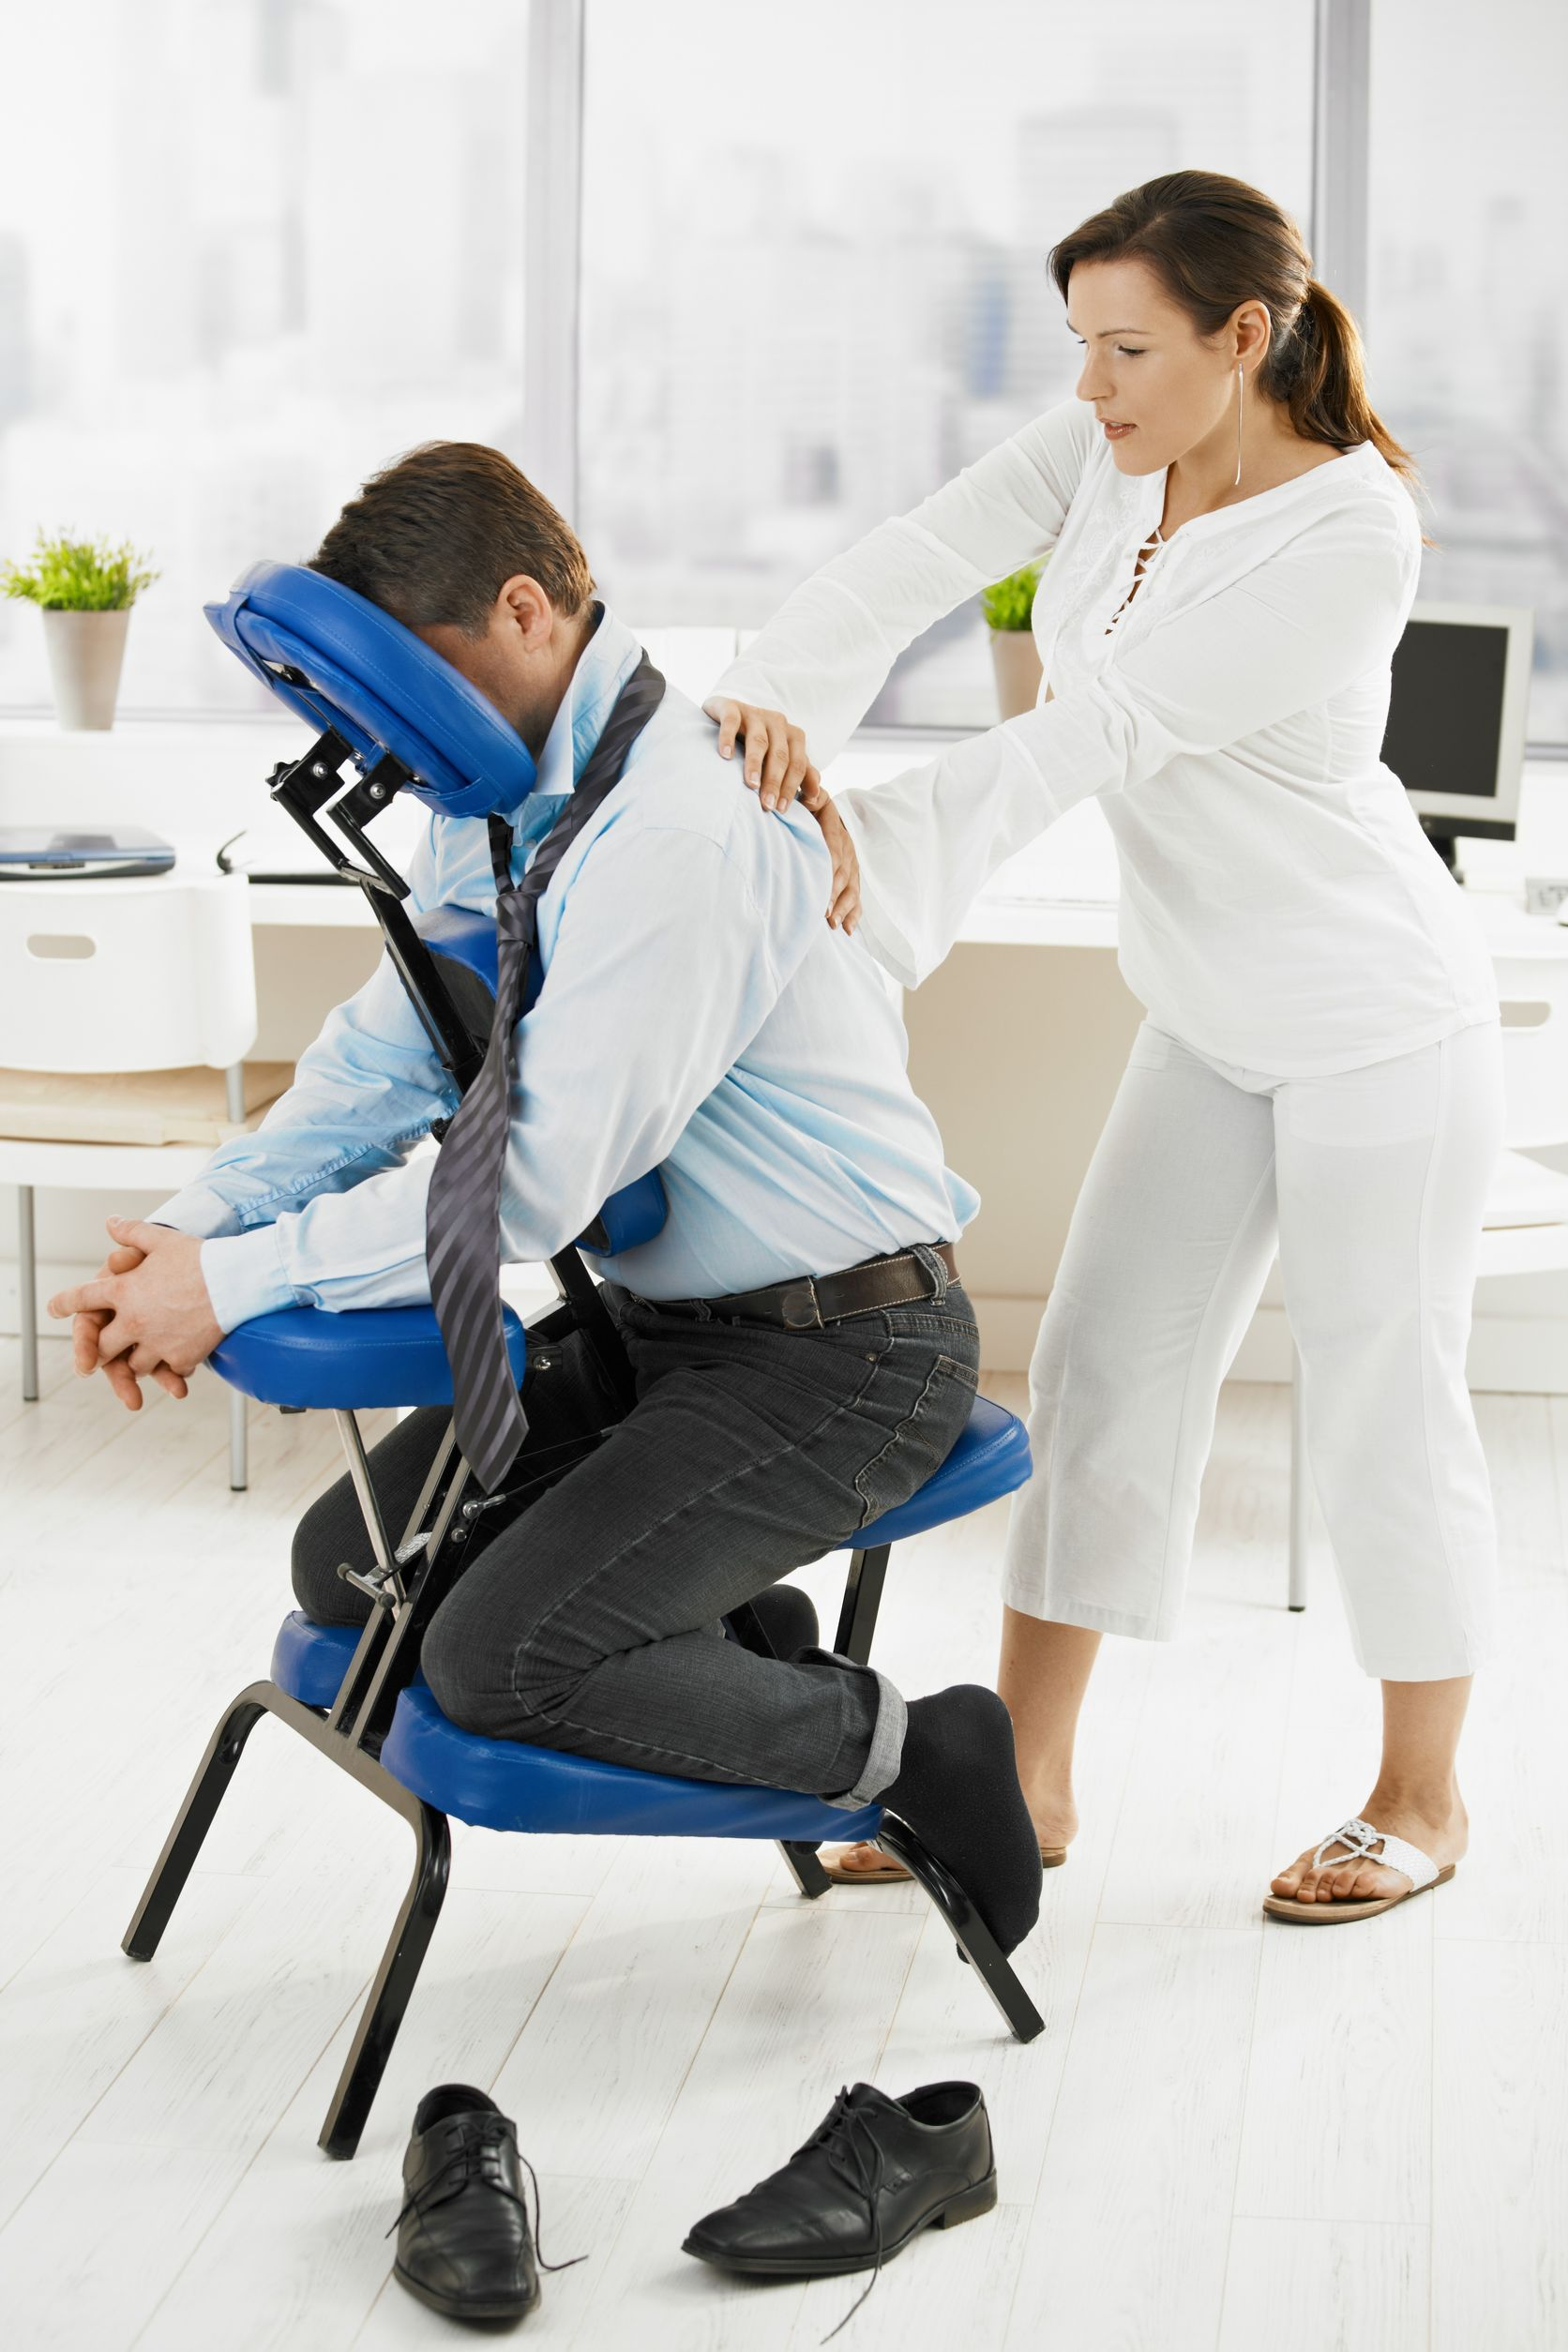 Chair Massage Therapy Works Chair Massage In The Workplace